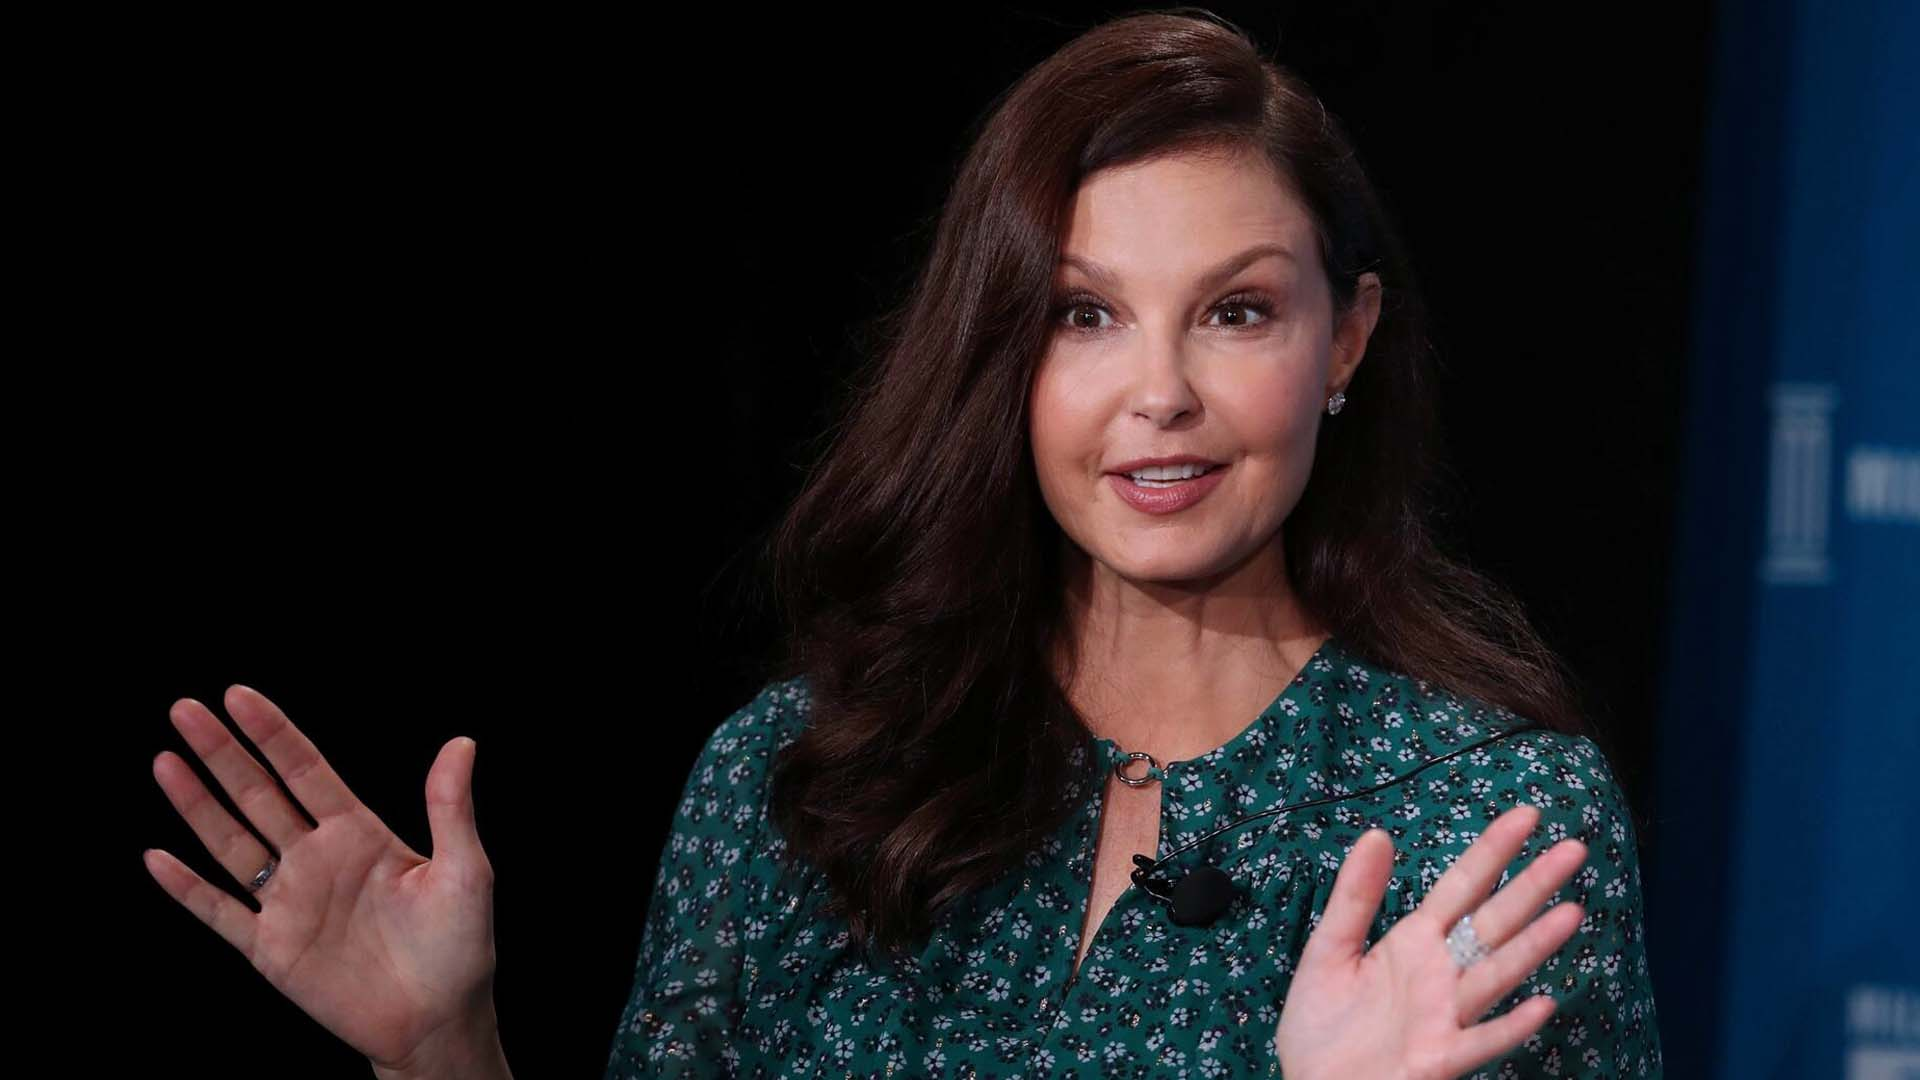 Ashley Judd ha accusato Harvey Weinstein